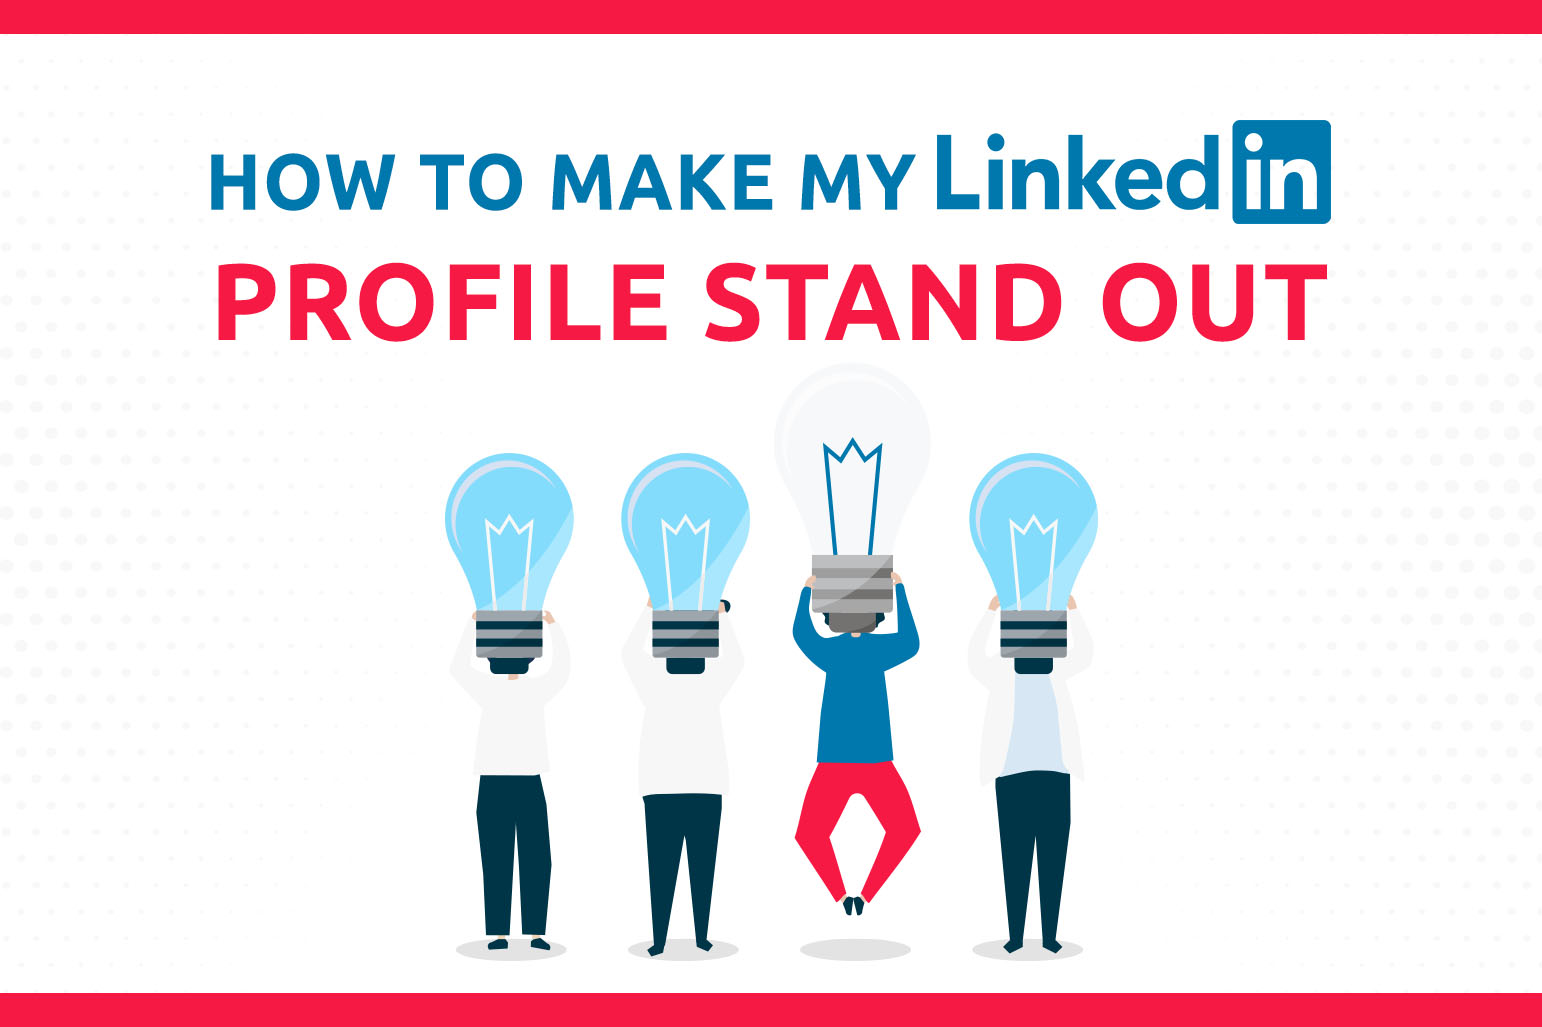 How To Make My LinkedIn Profile Stand Out